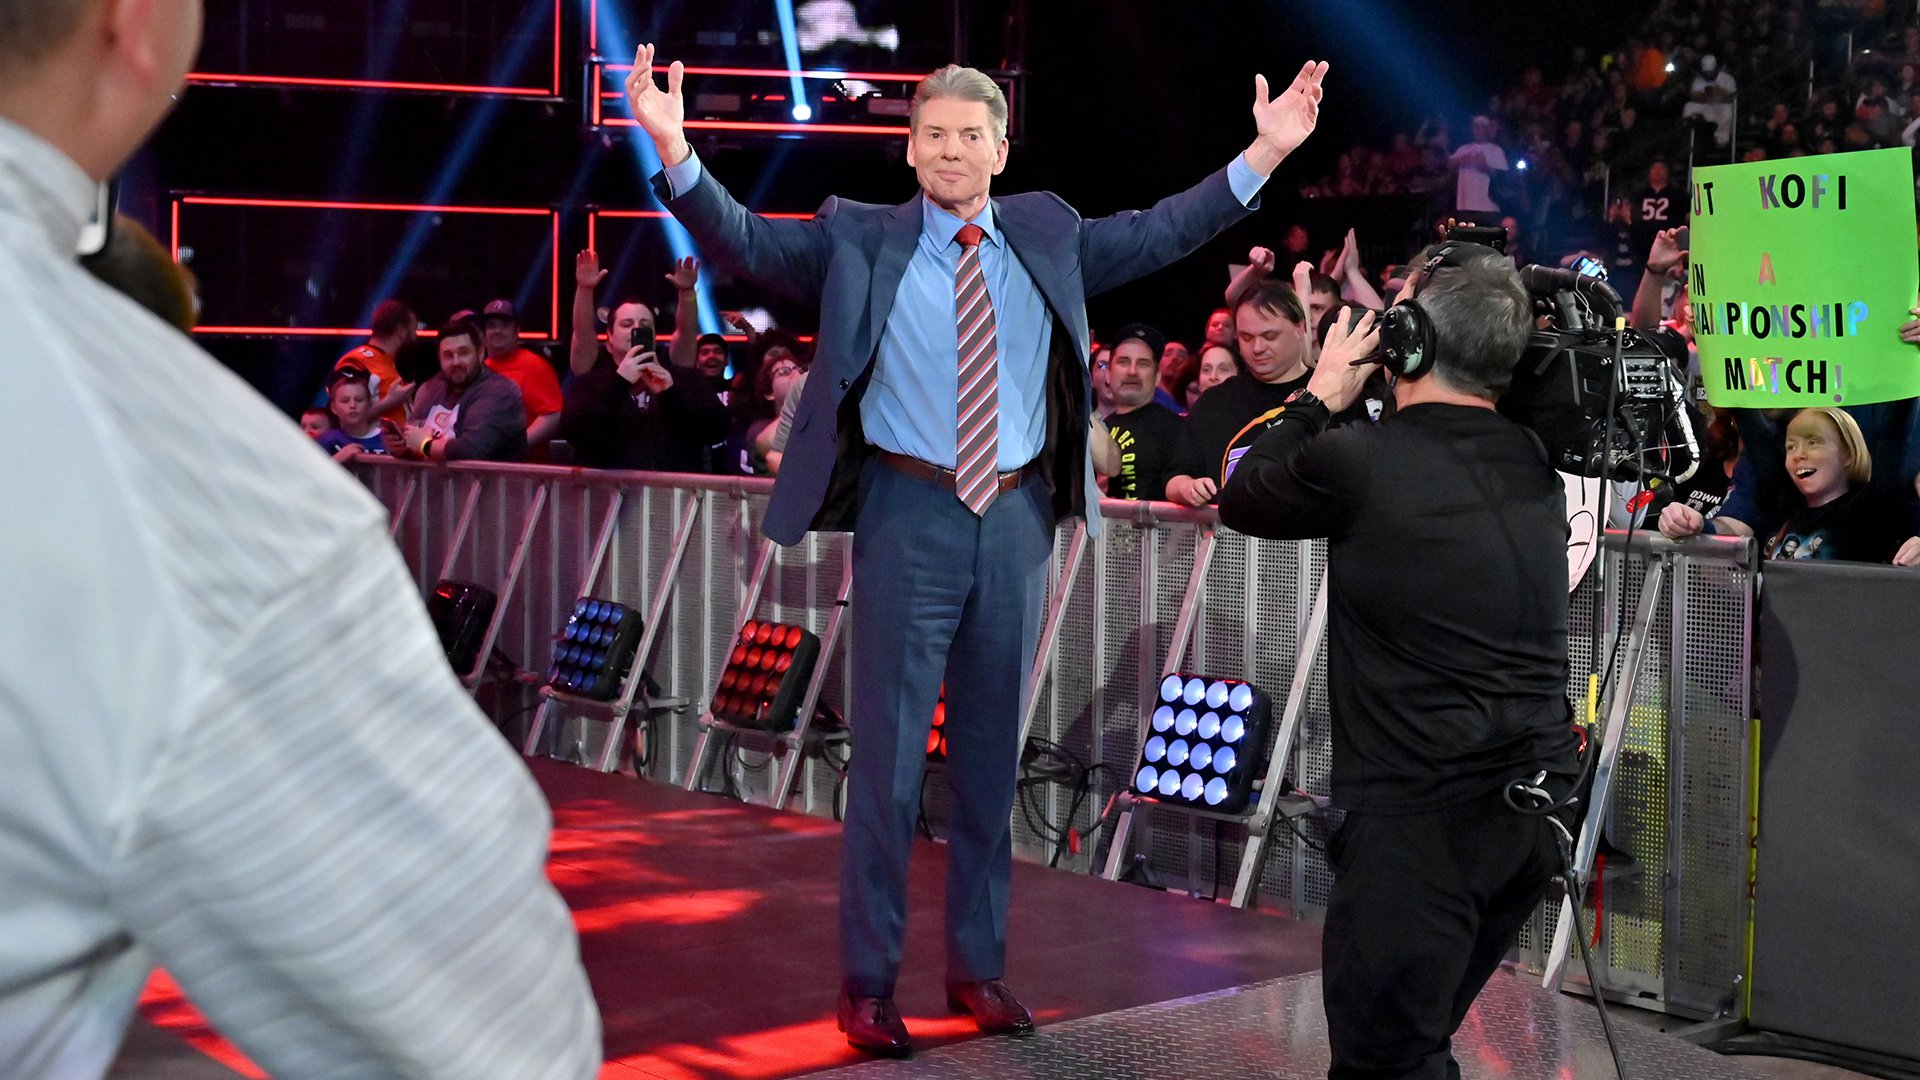 Two nights after forcing Kofi Kingston to compete in a Handicap Match against The Bar, Mr. McMahon hits the ring to address The Dreadlocked Dynamo's WWE Championship aspirations.